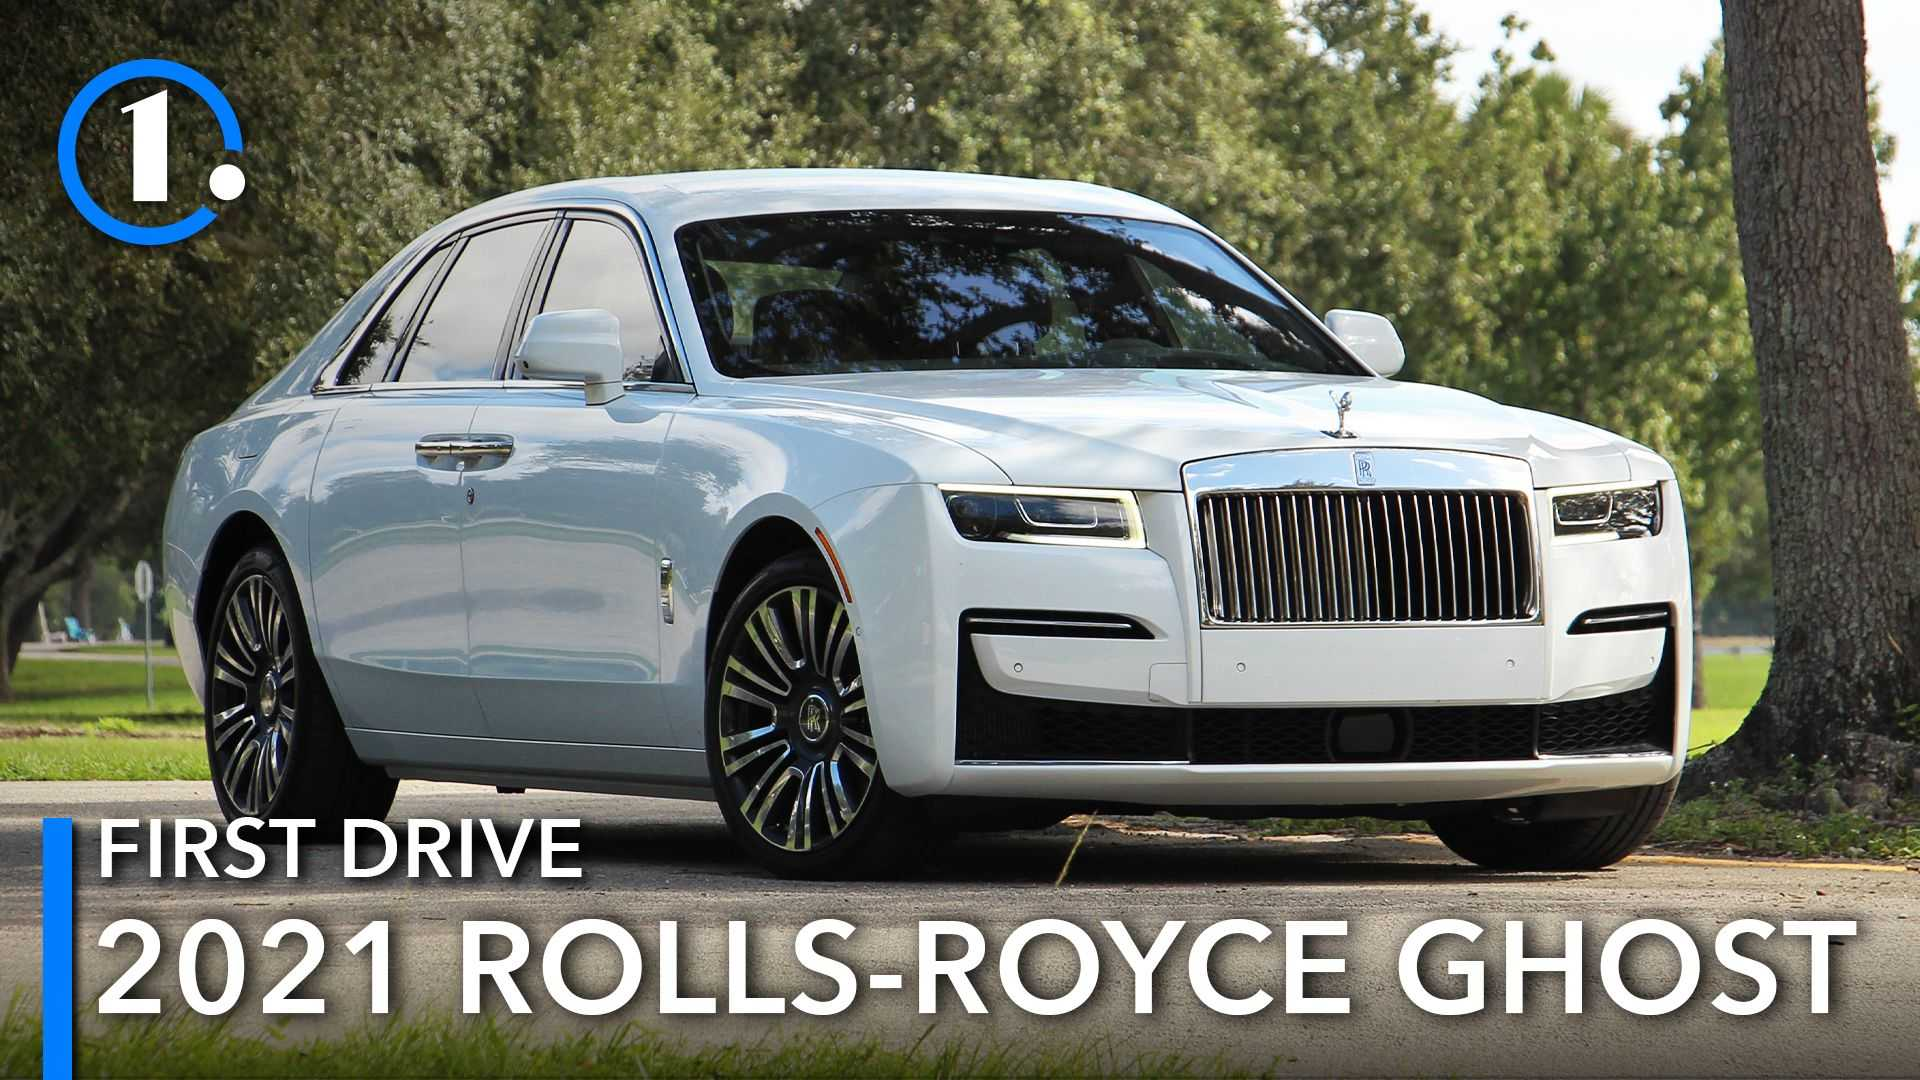 2021 Rolls-Royce Ghost First Drive Review: All That And Then Some